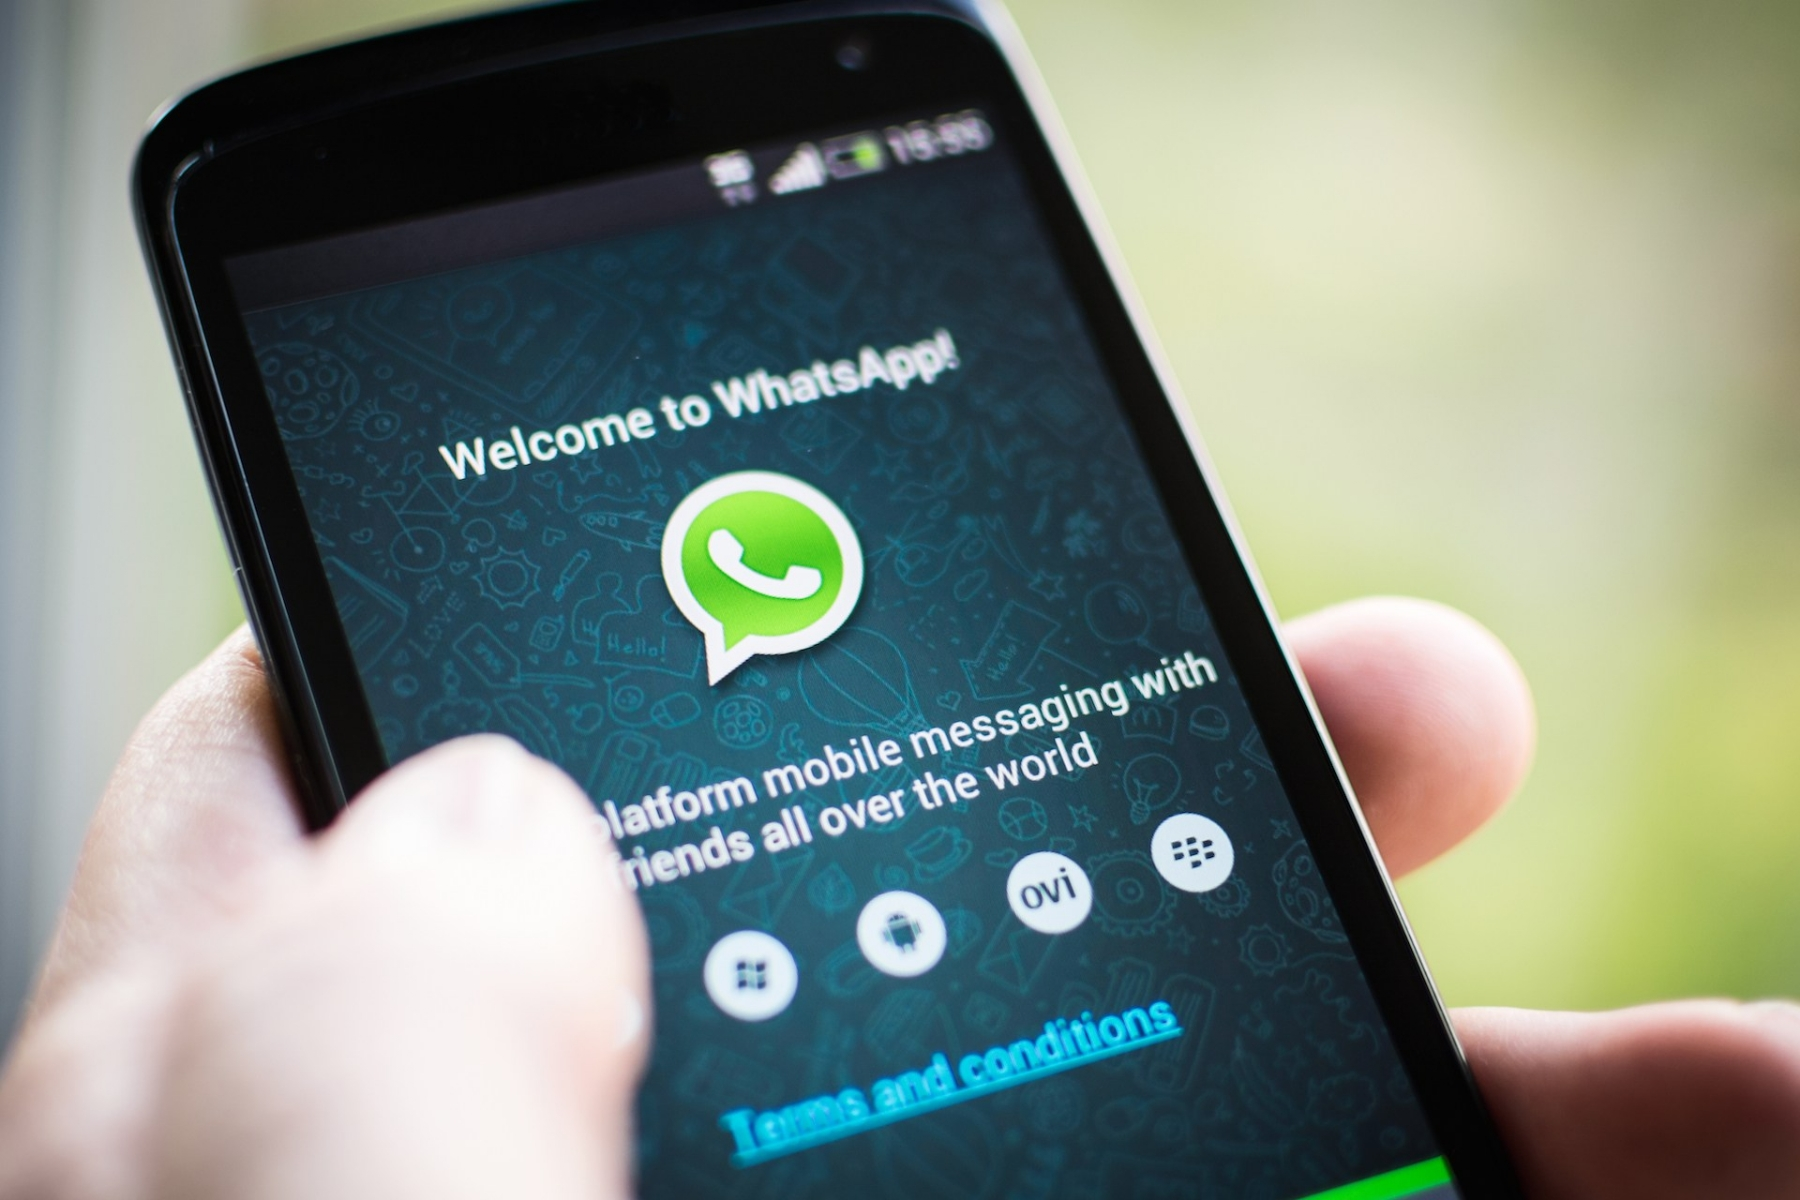 Instant messaging apps and WhatsApp are the first things people check in morning, says Deloitte